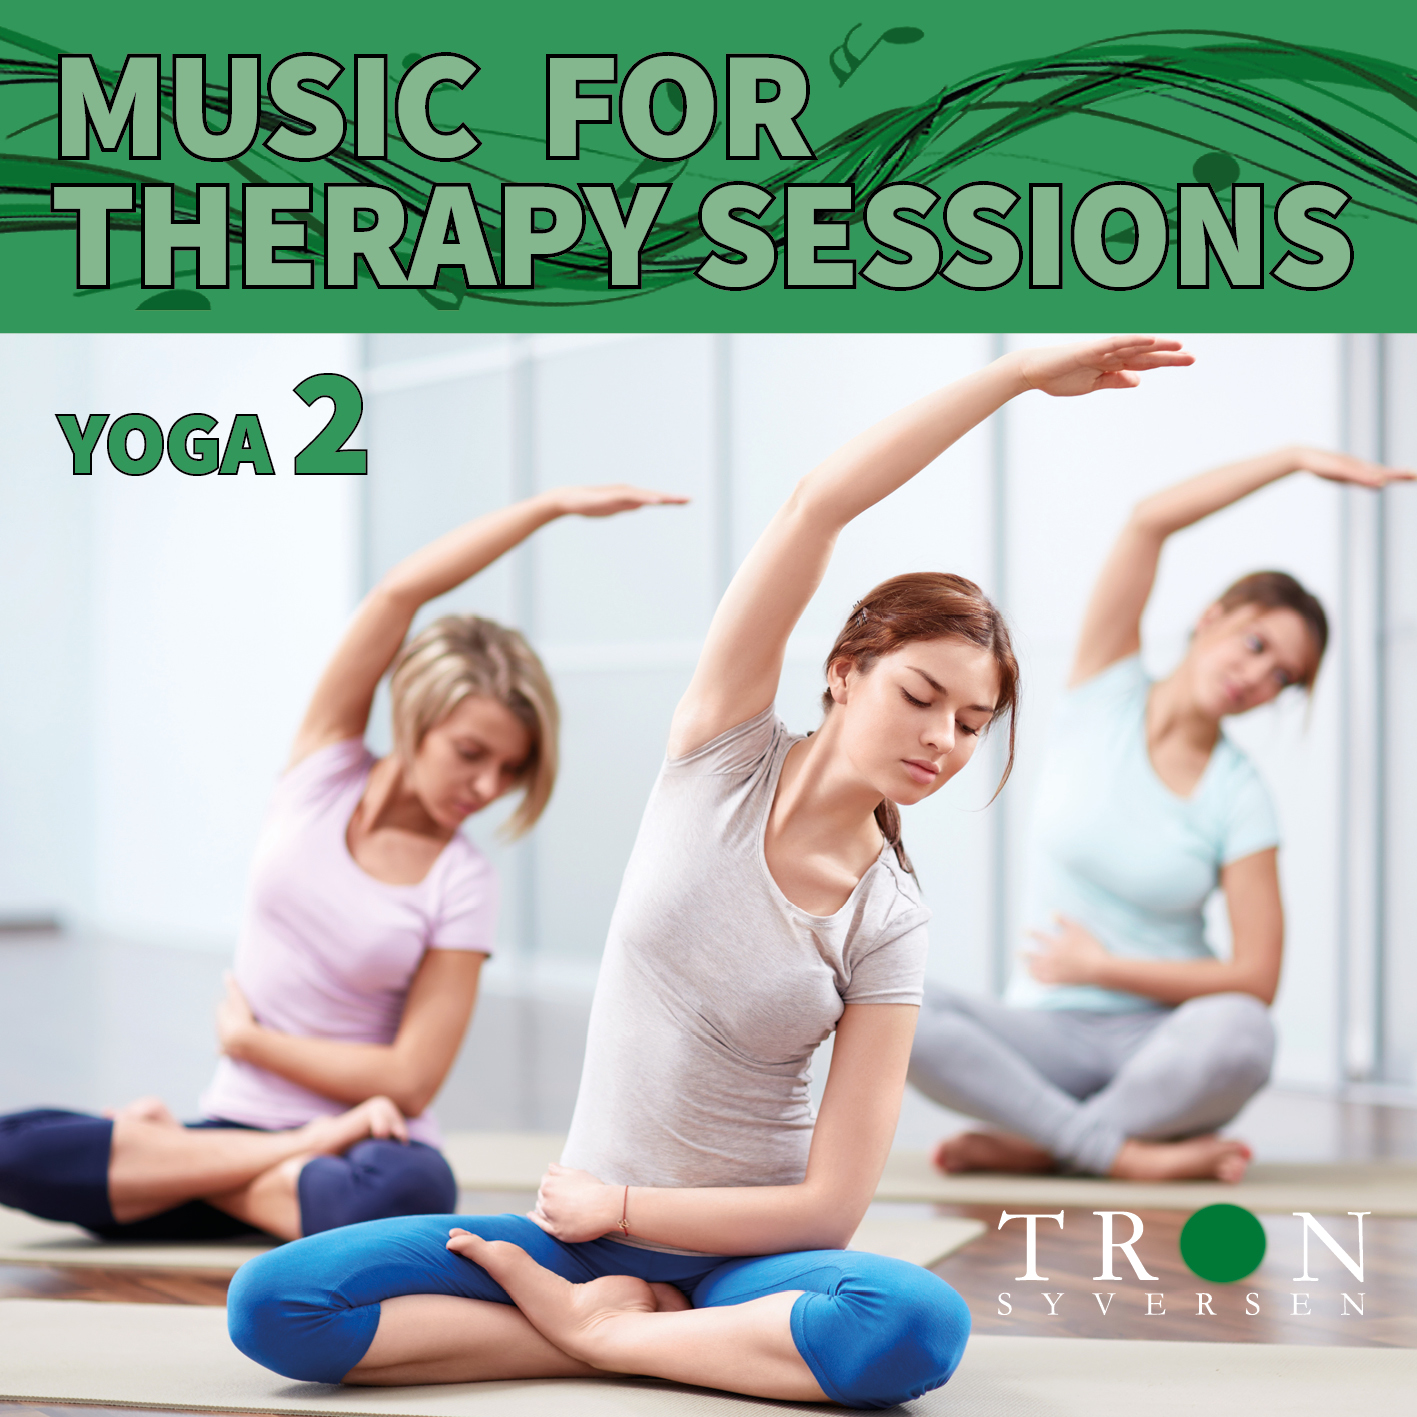 MUSIC FOR THERAPY SESSIONS YOGA VOL 2 - DIGITAL DOWNLOAD